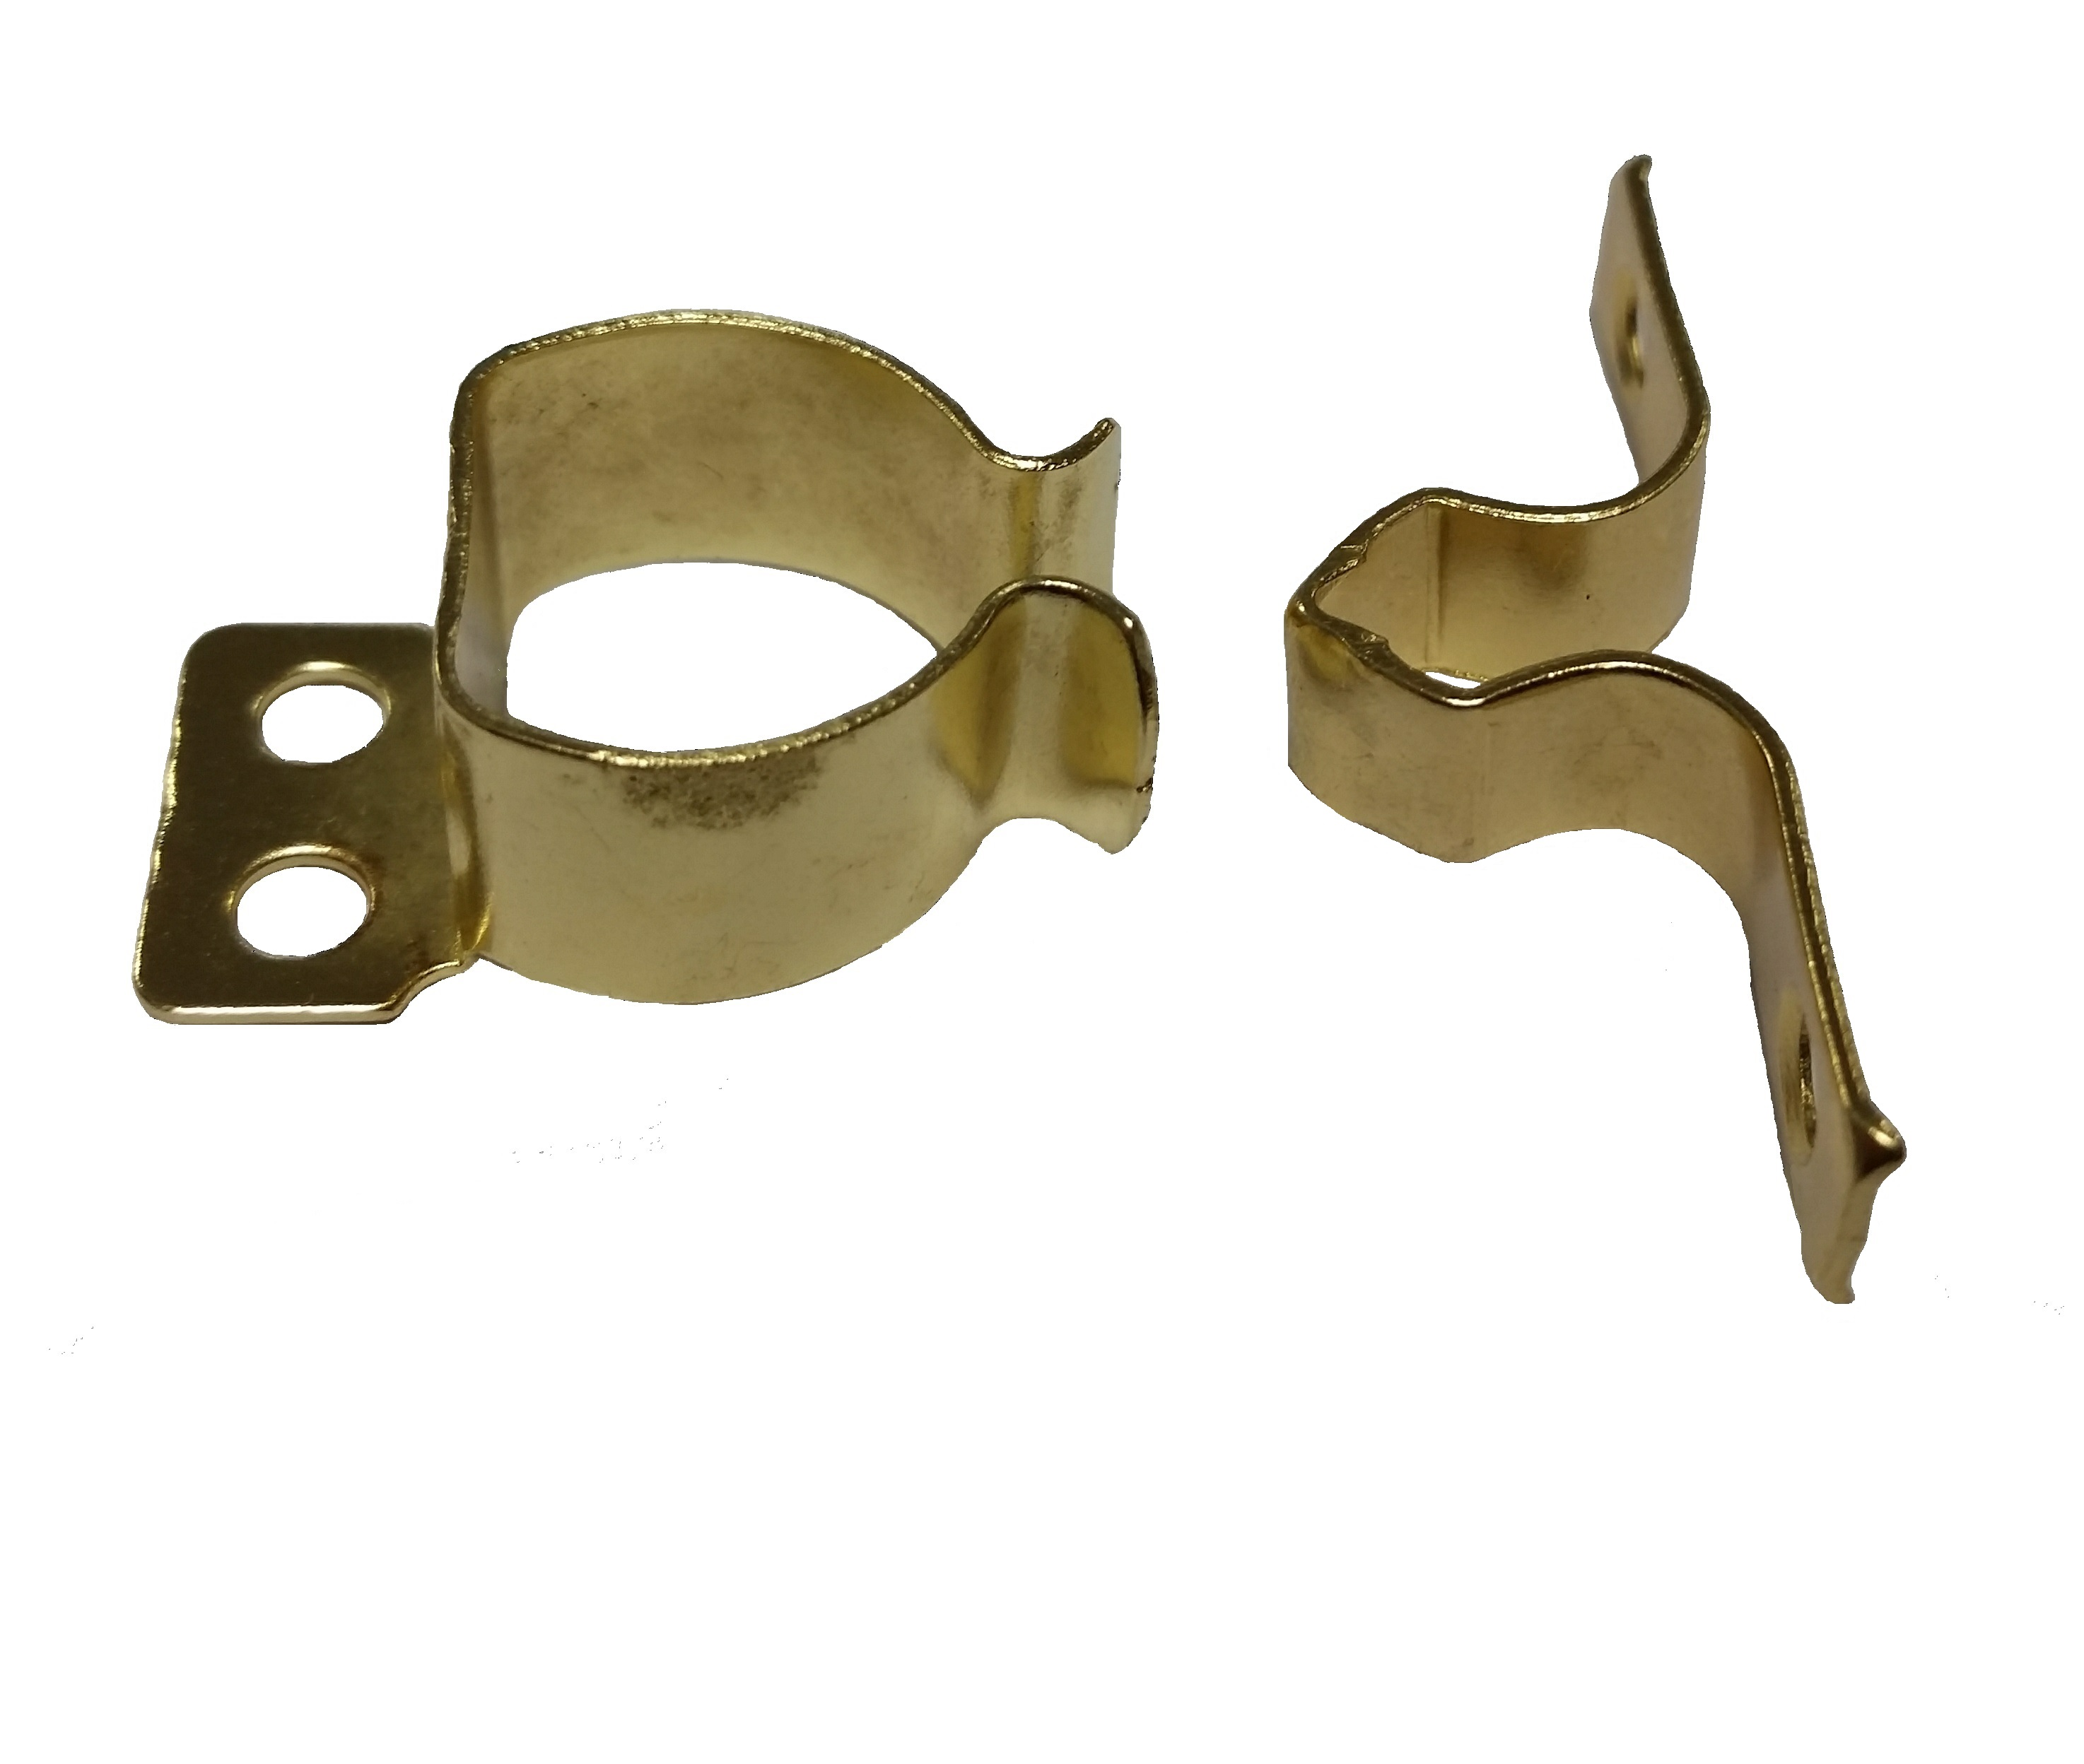 Gripper Catch  Material : Steel - Brass platedScrew size – 3mm Pan (Not Supplied) Gripper catches are used in light weight applications for keeping cupboard doors or flaps shut, made out of light weight steel and electro brass plated this two part item will sit on the surface unobtrusively within the framework. By pinching together the two arms this enables the amount of pressure required to keep the door or flat shut to be adjusted.